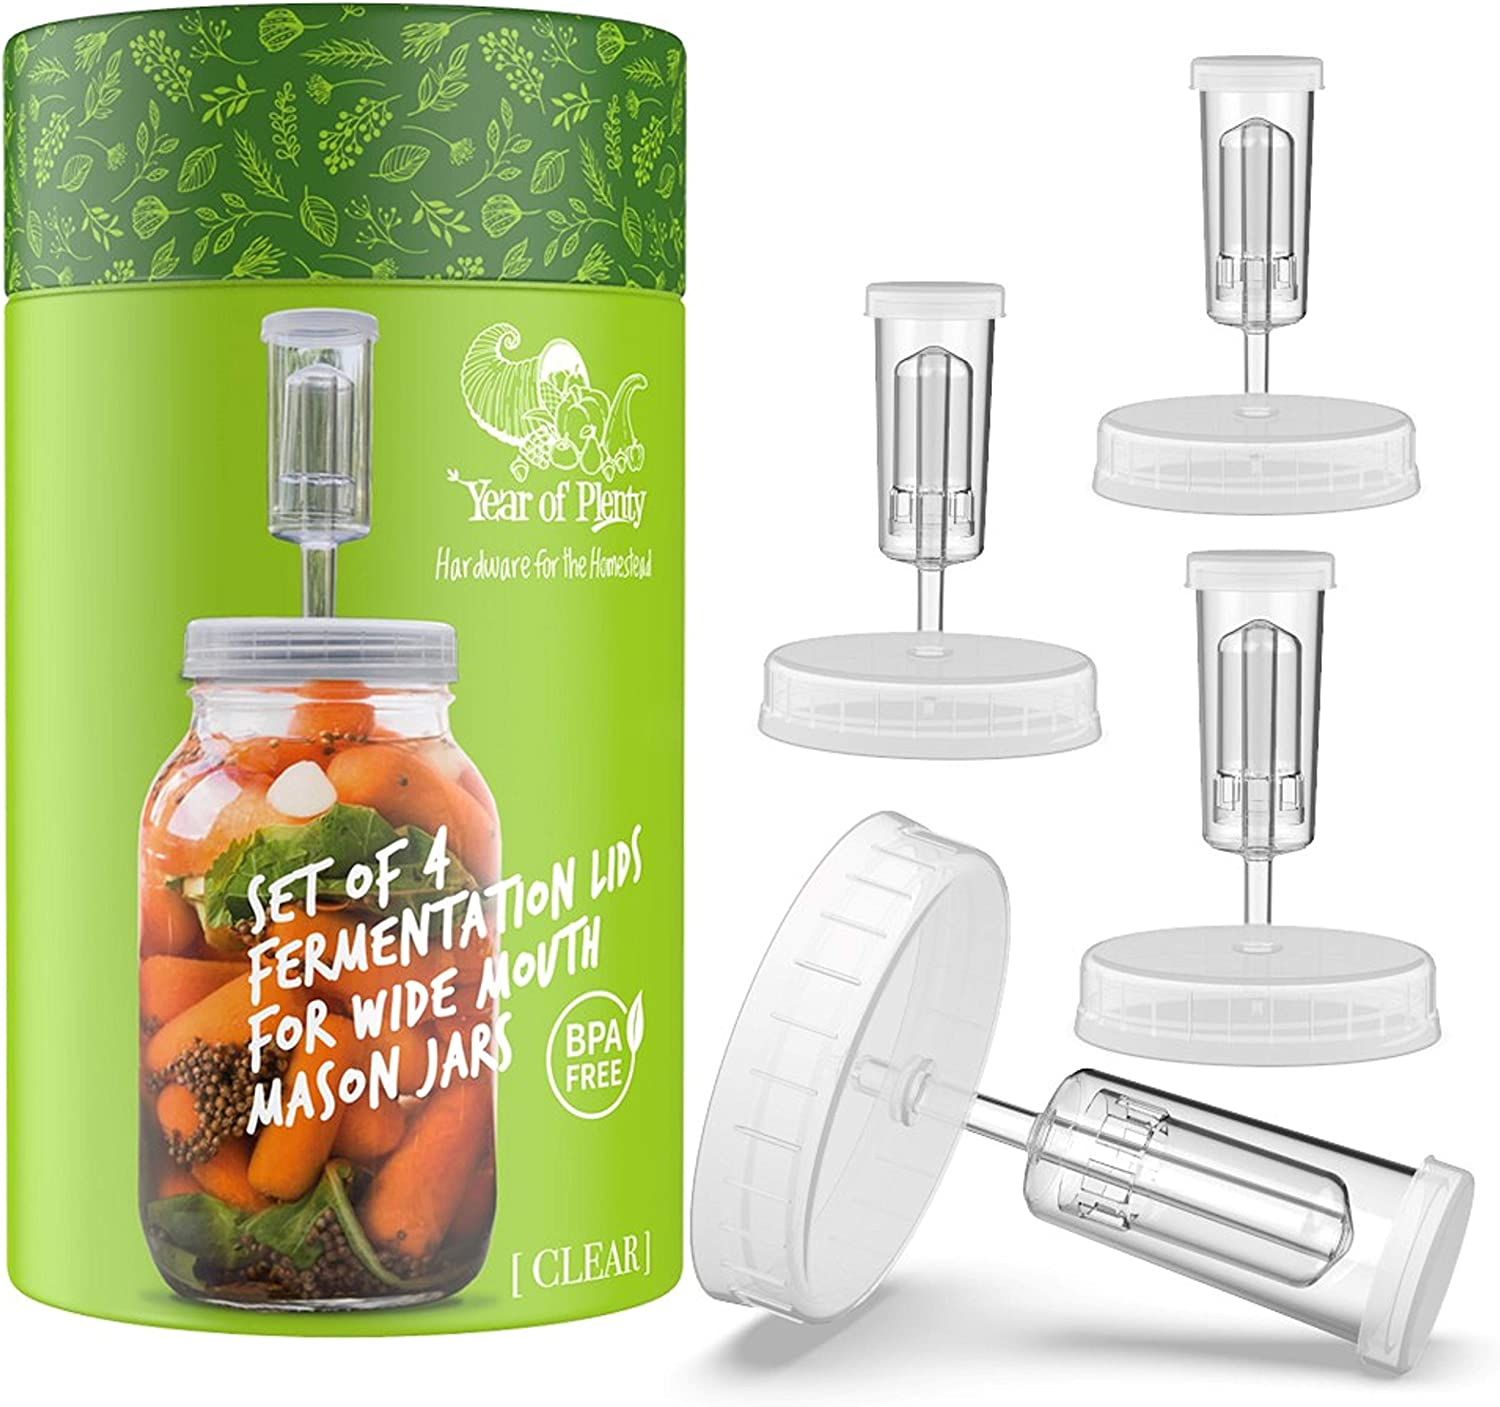 For Wide Mouth Mason Jar Ferments such as Sauerkraut Year of Plenty Fermentation Set Kimchi and Pickles Includes 4 NonSlip Grip Glass Fermentation Weights and 4 Clear Fermenting Lids